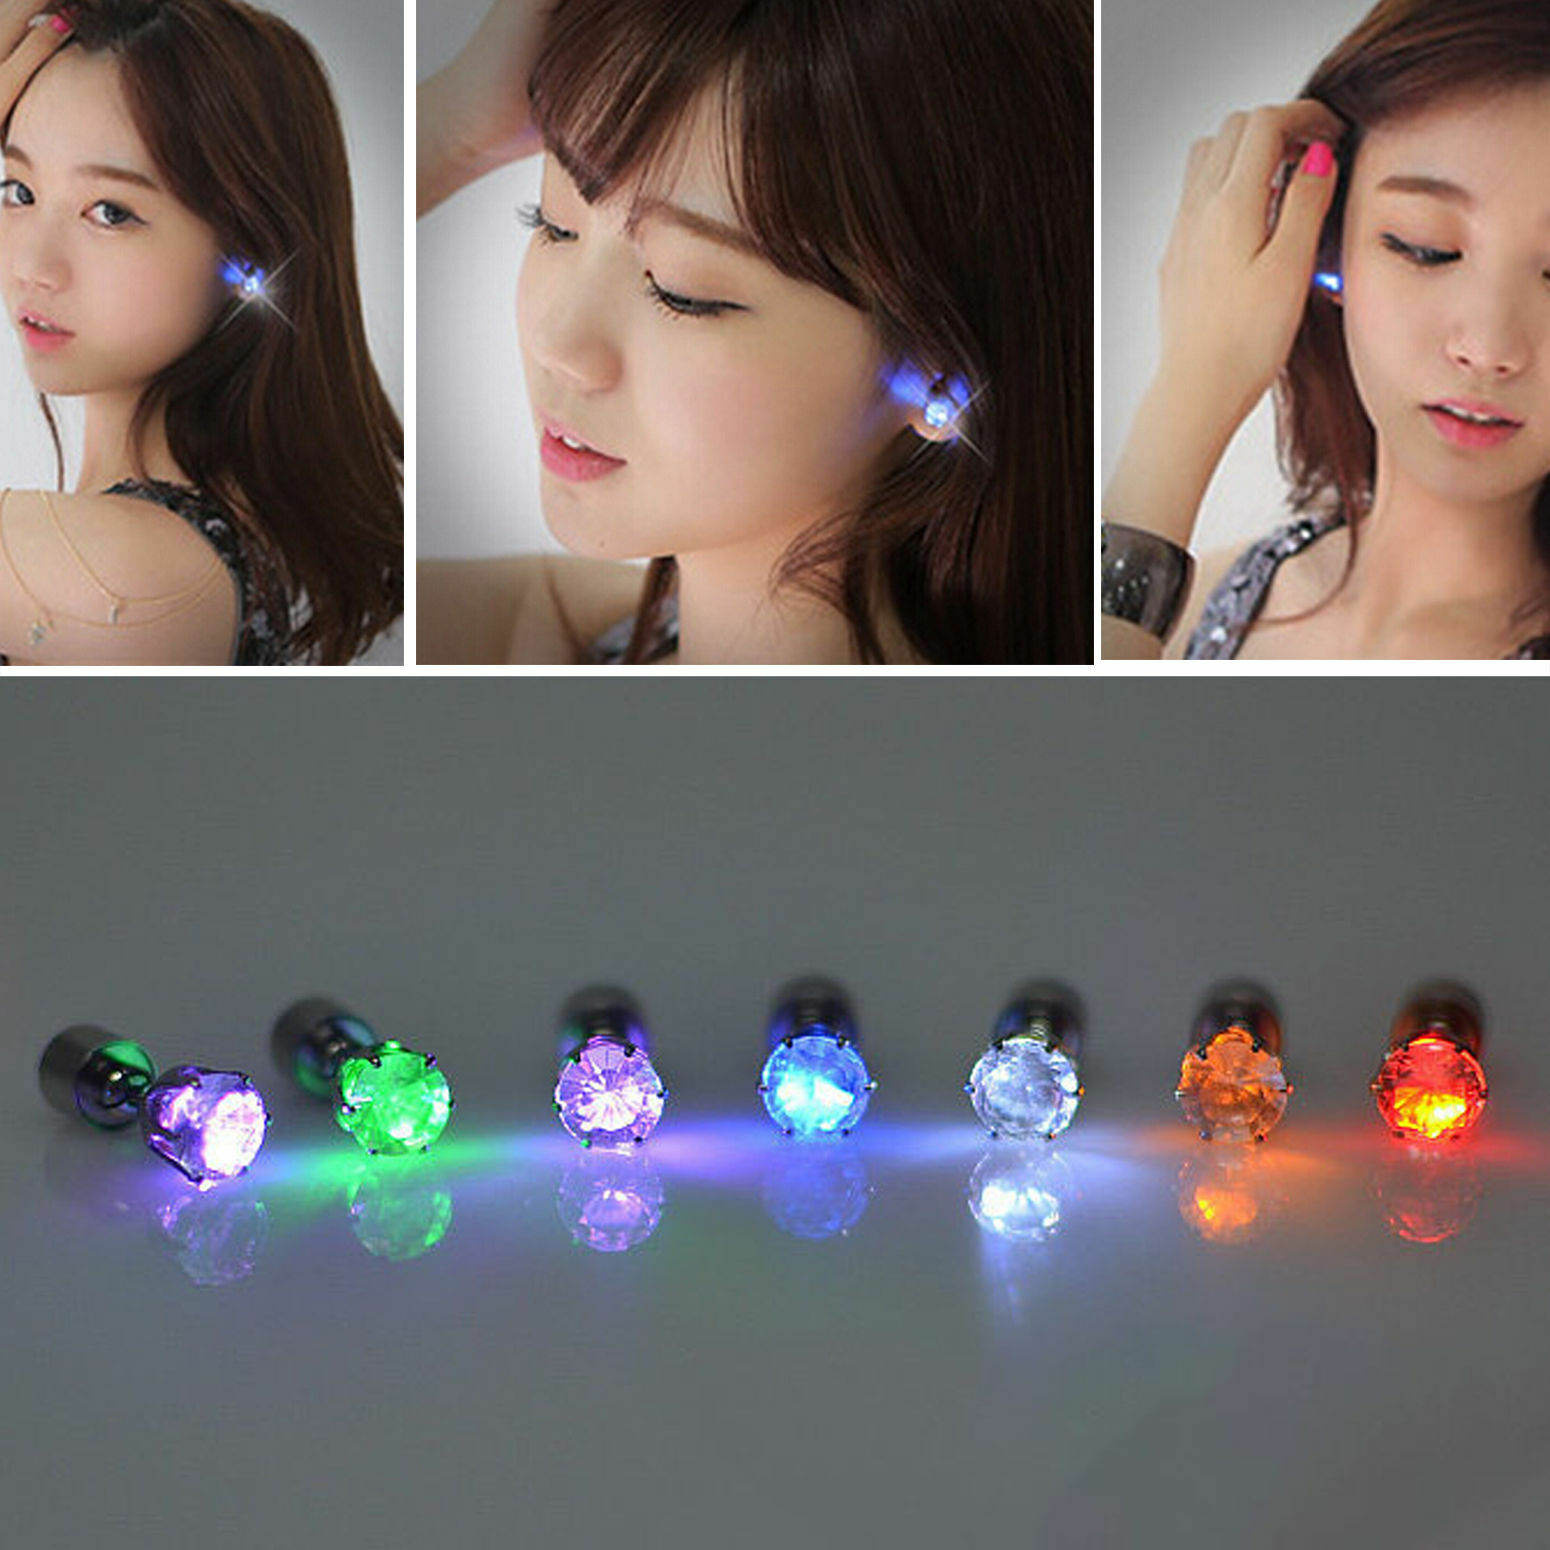 Led Earrings Details About New Charm 2pc Led Earrings Light Up Glowing Crystal Ear Drops Nice Party Jewelry